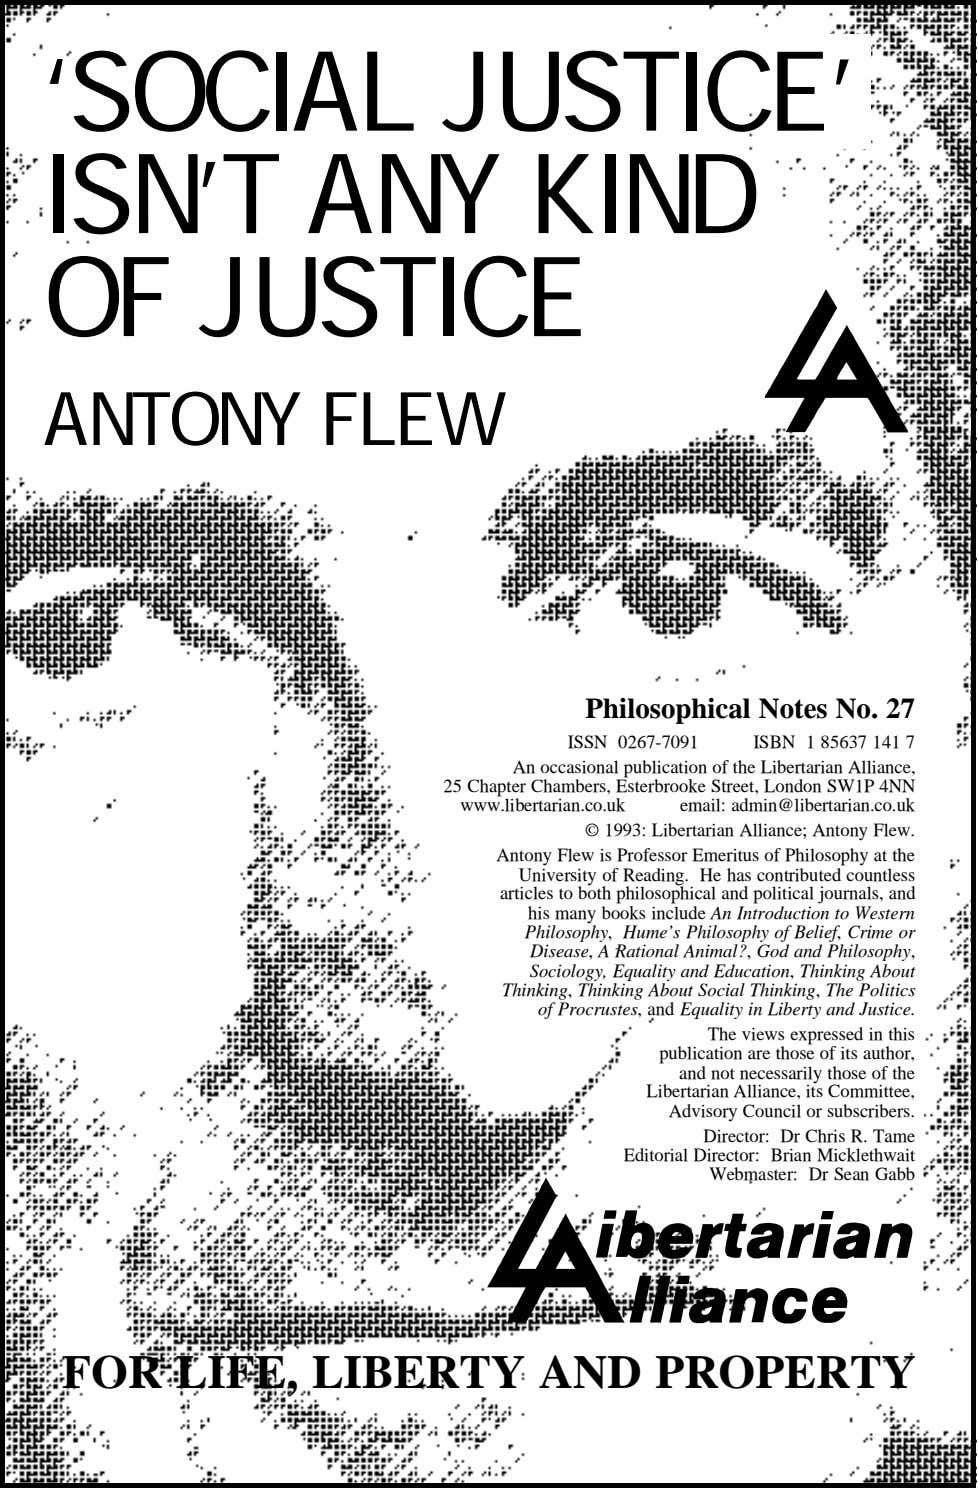 'SOCIAL JUSTICE' ISN'T ANY KIND OF JUSTICE ANTONY FLEW Philosophical Notes No. 27 ISSN 0267-7091